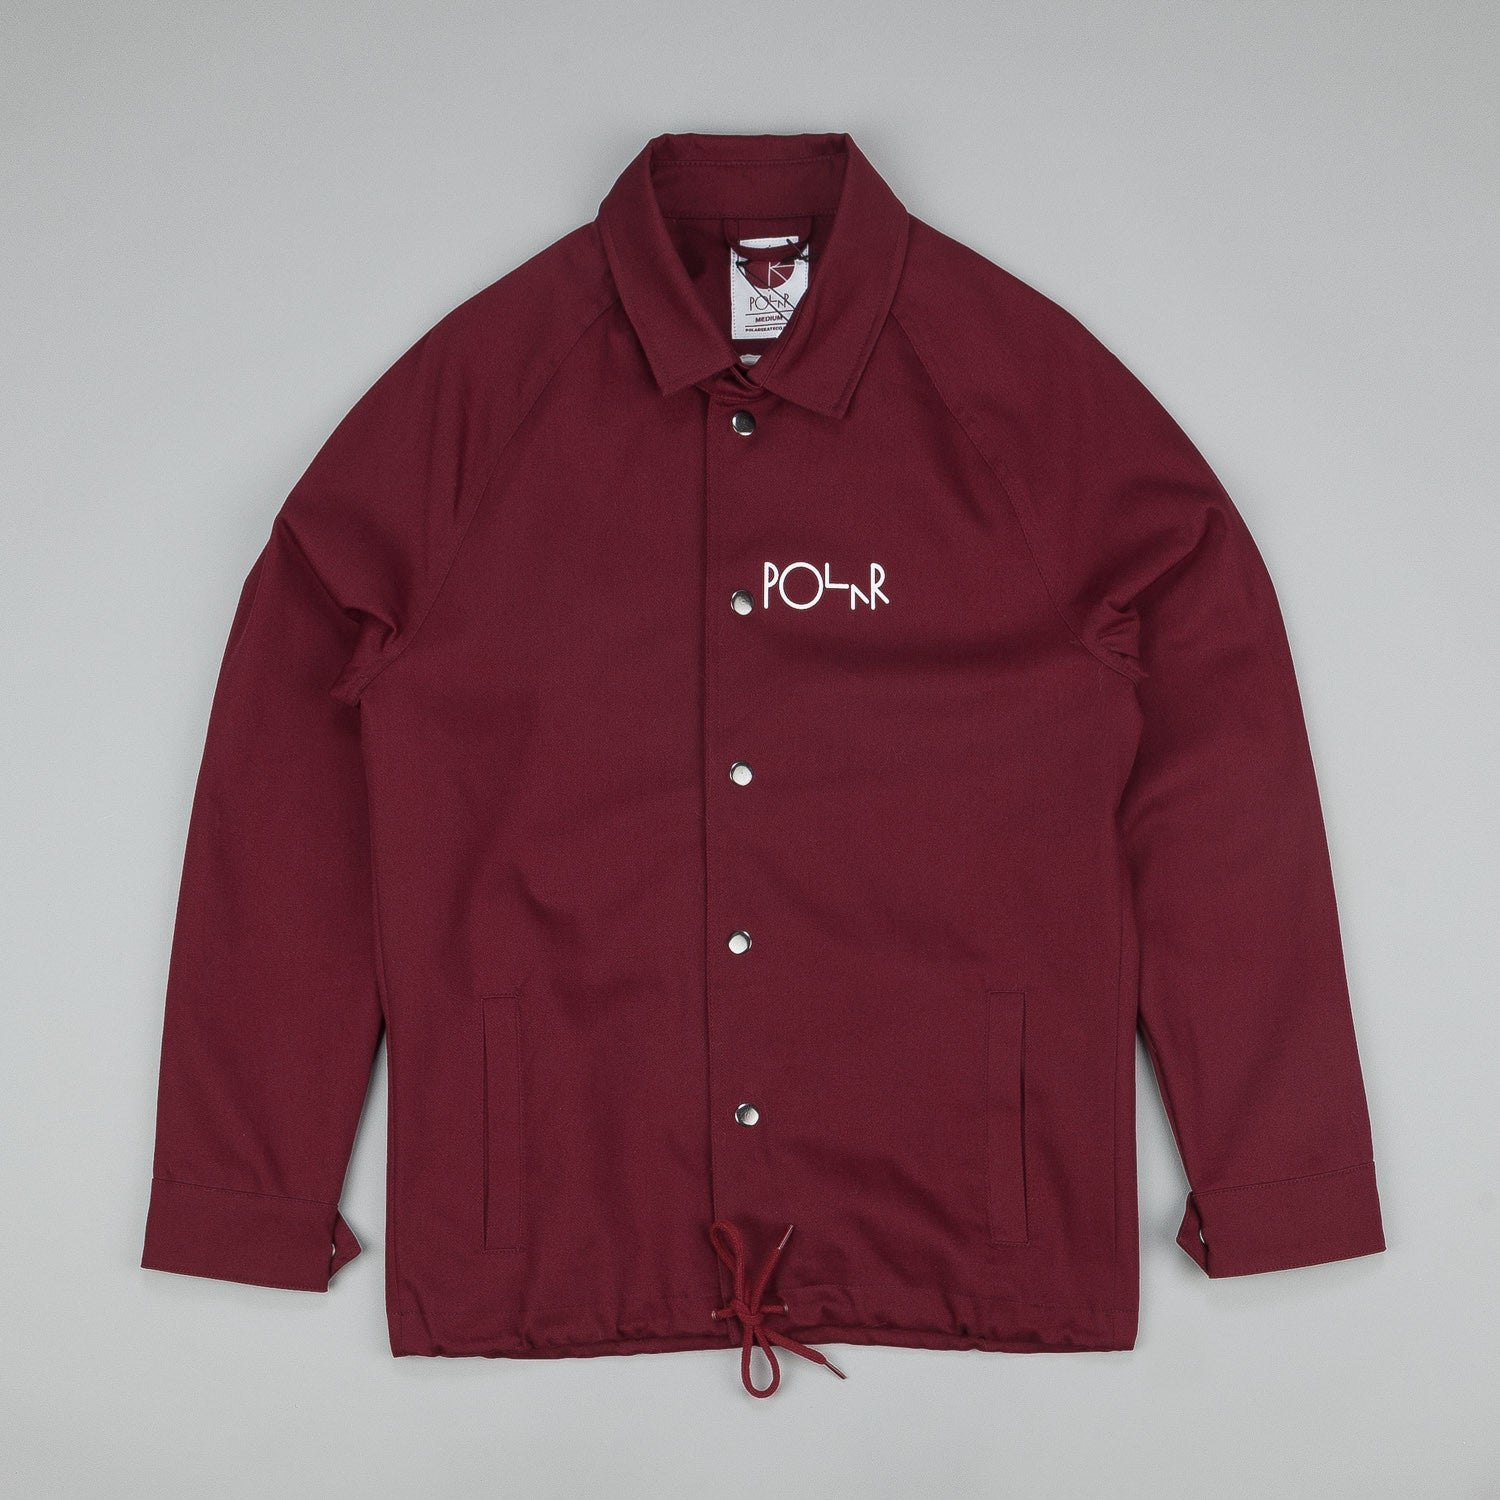 Polar Stroke Logo Coach Jacket Burgundy